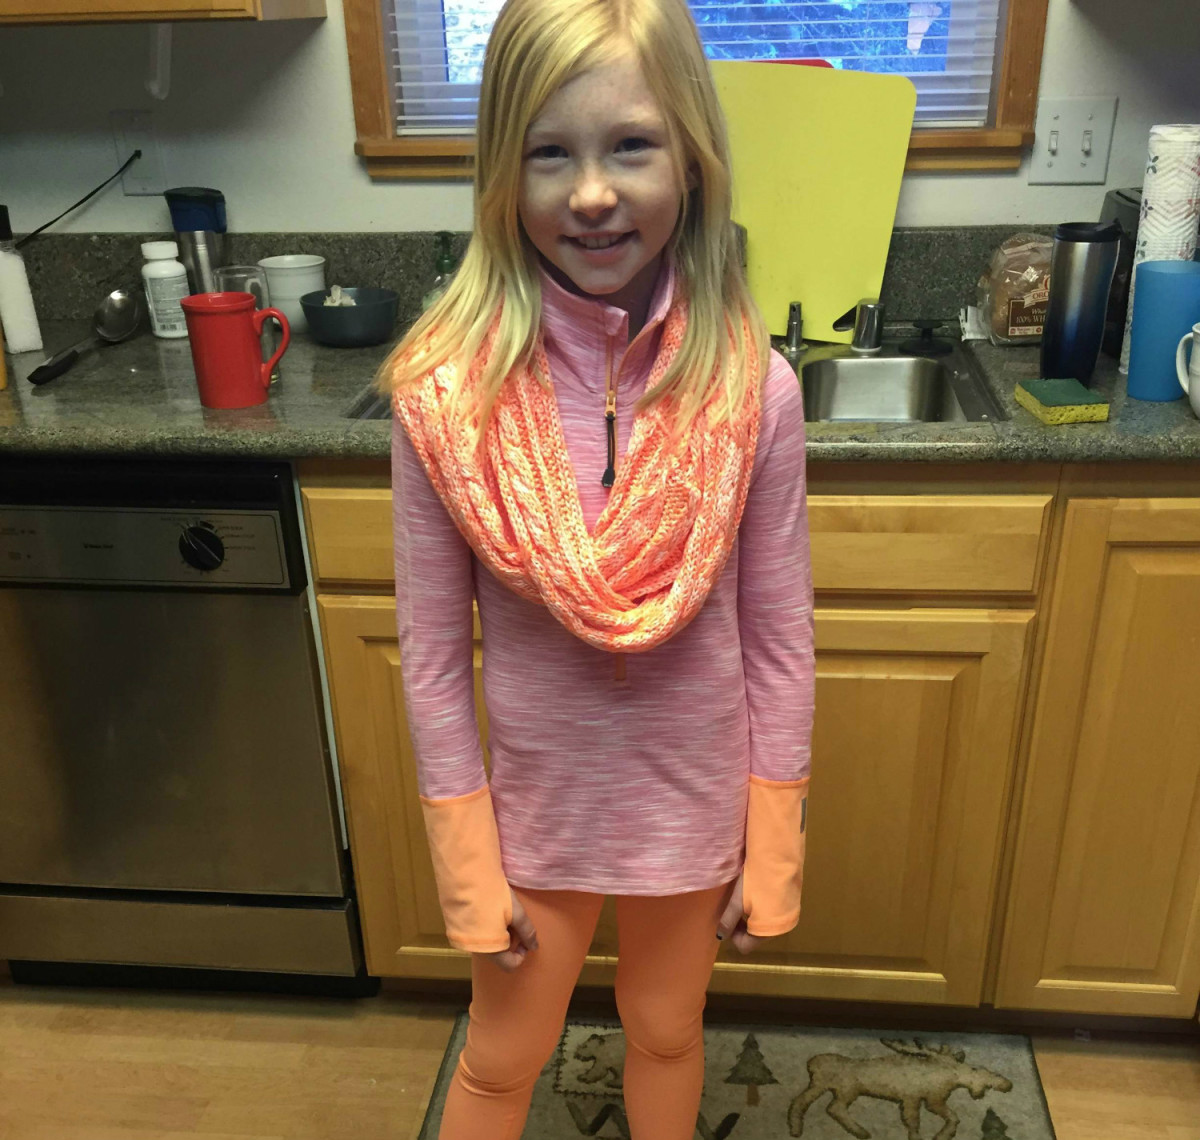 Great gifts for girly girls: A fun scarf is always a great gift for a young girl.